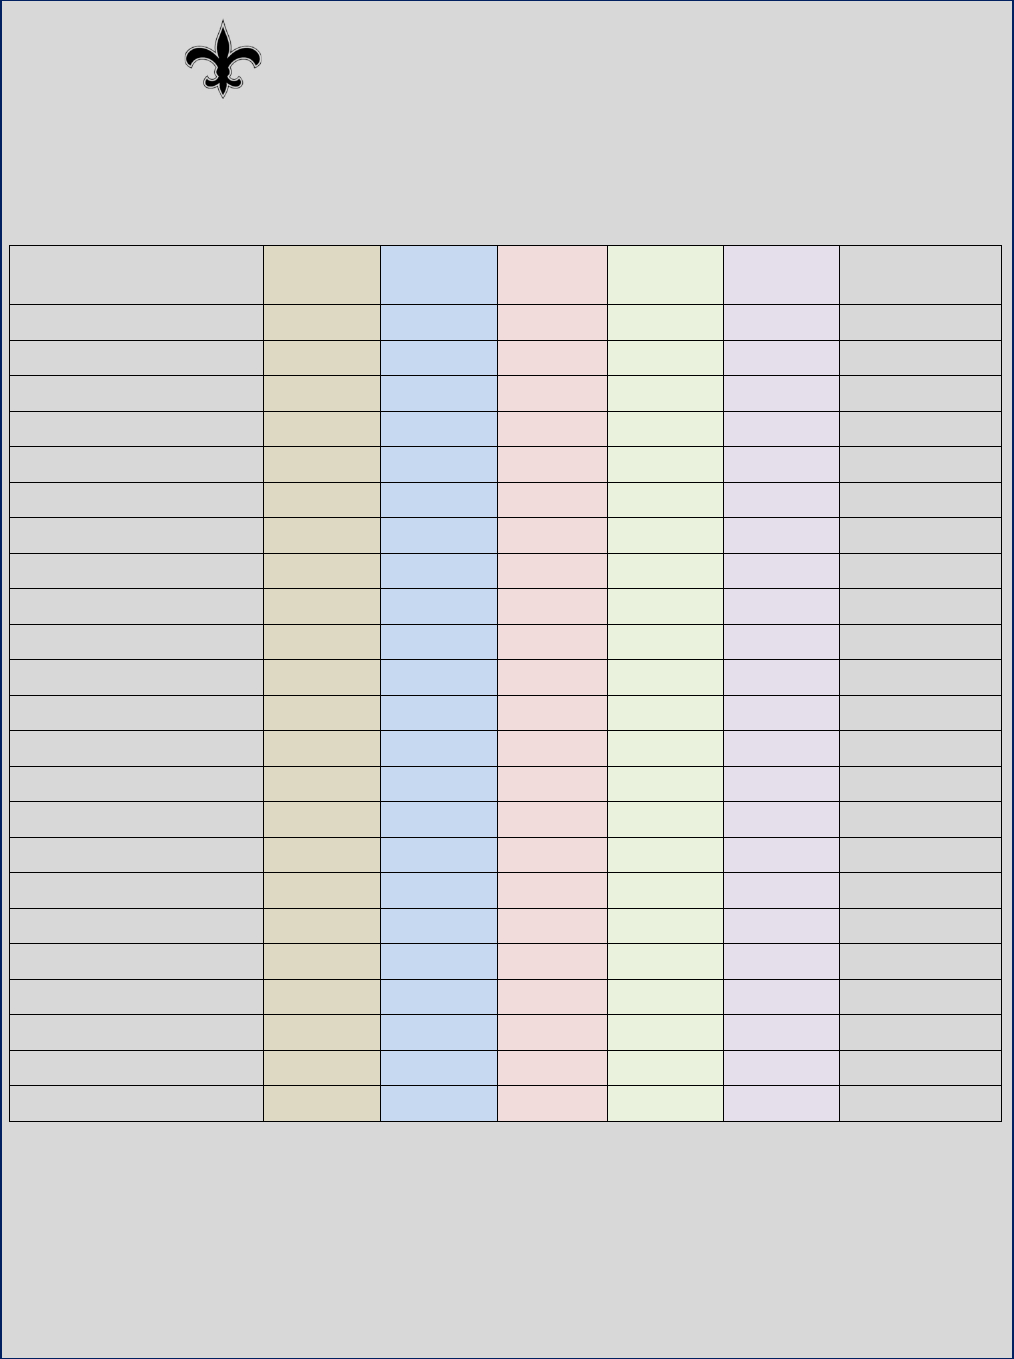 Employee'S Attendance Sheet Template In Word And Pdf Formats